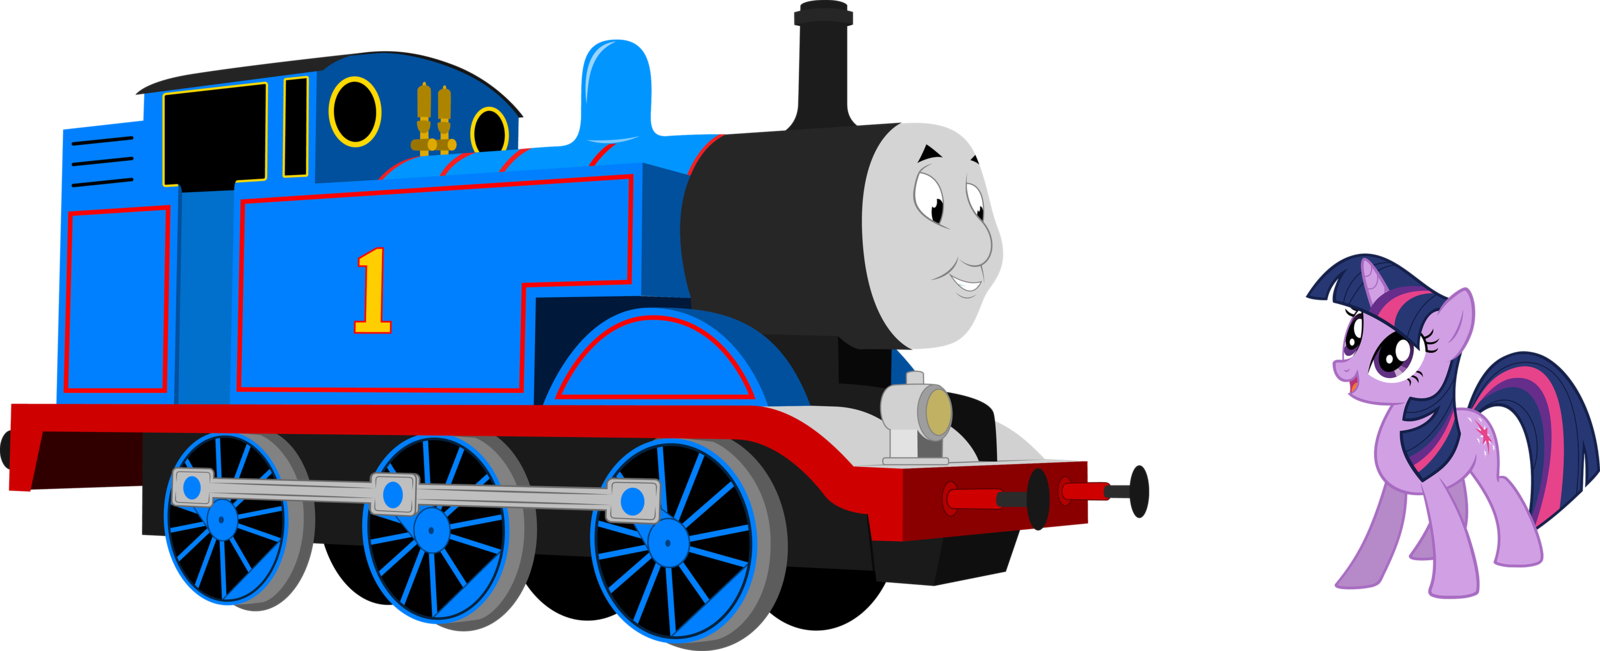 Thomas the train and friends clipart at getdrawings free for 1600x651 twilight meet thomas by artthriller94 on deviantart m4hsunfo